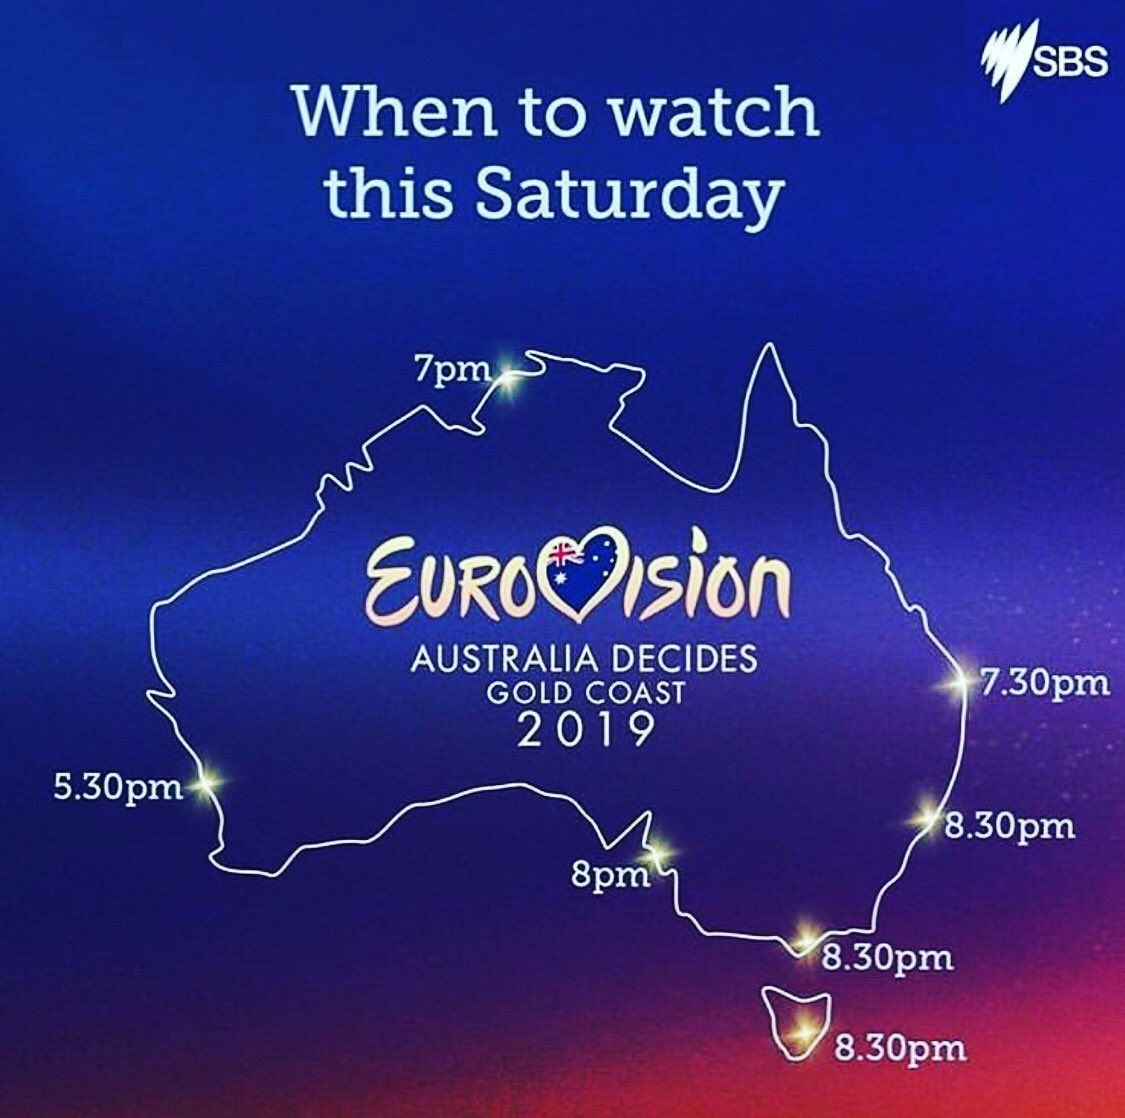 You know what to do tonight. Come and join me and @joelcreasey. I think you'll be blown away. It's seriously amazing. #AusDecides #Eurovision